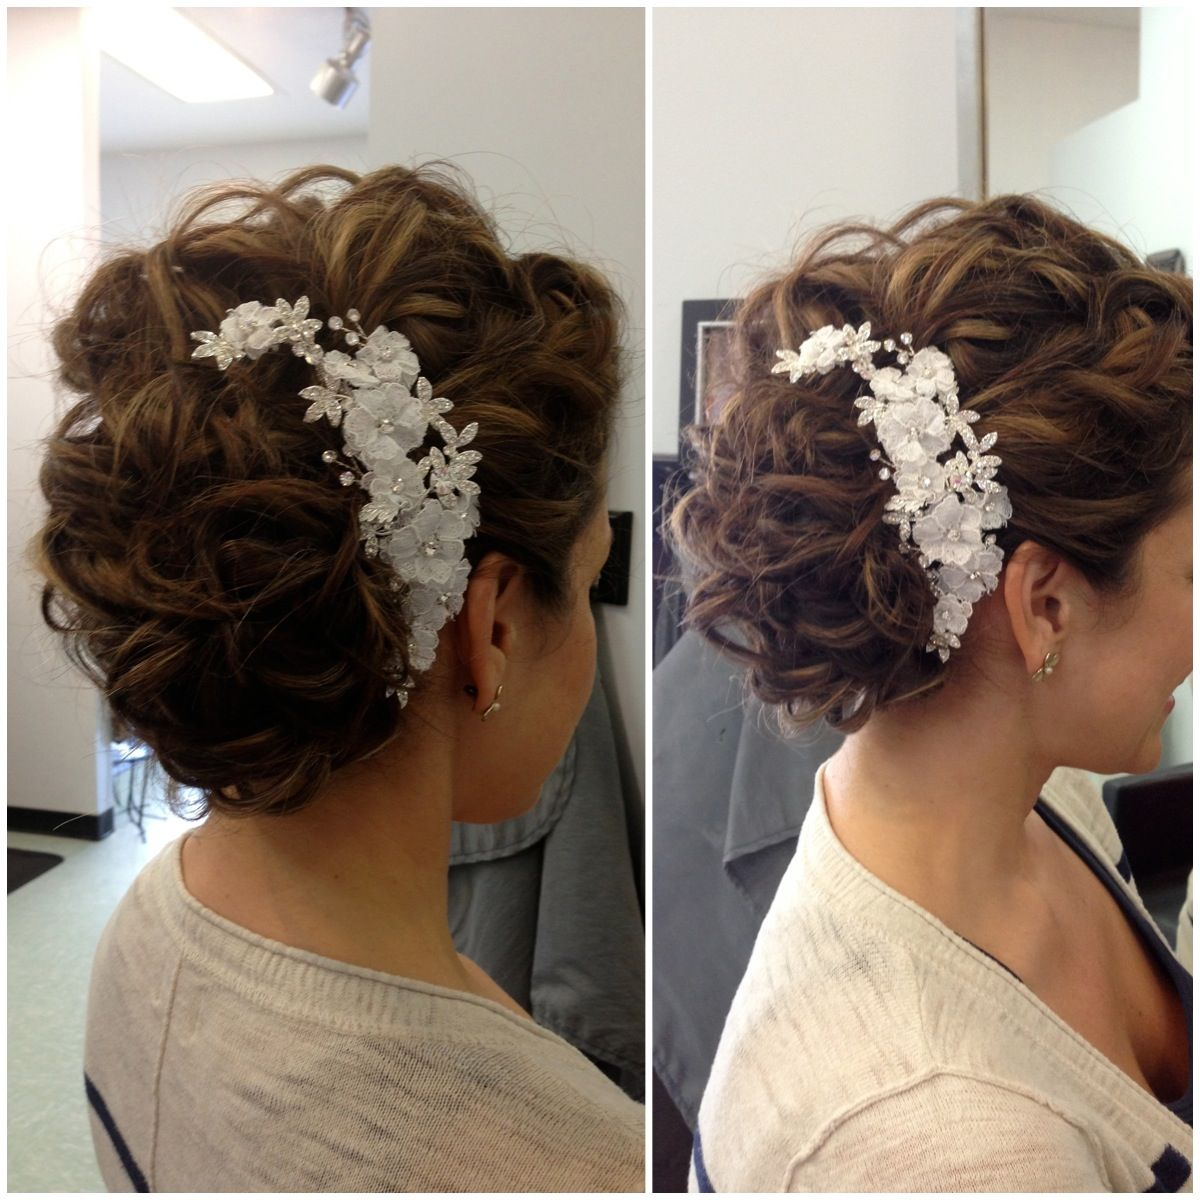 wedding hair, updo, hair accessories, loose curls | wedding